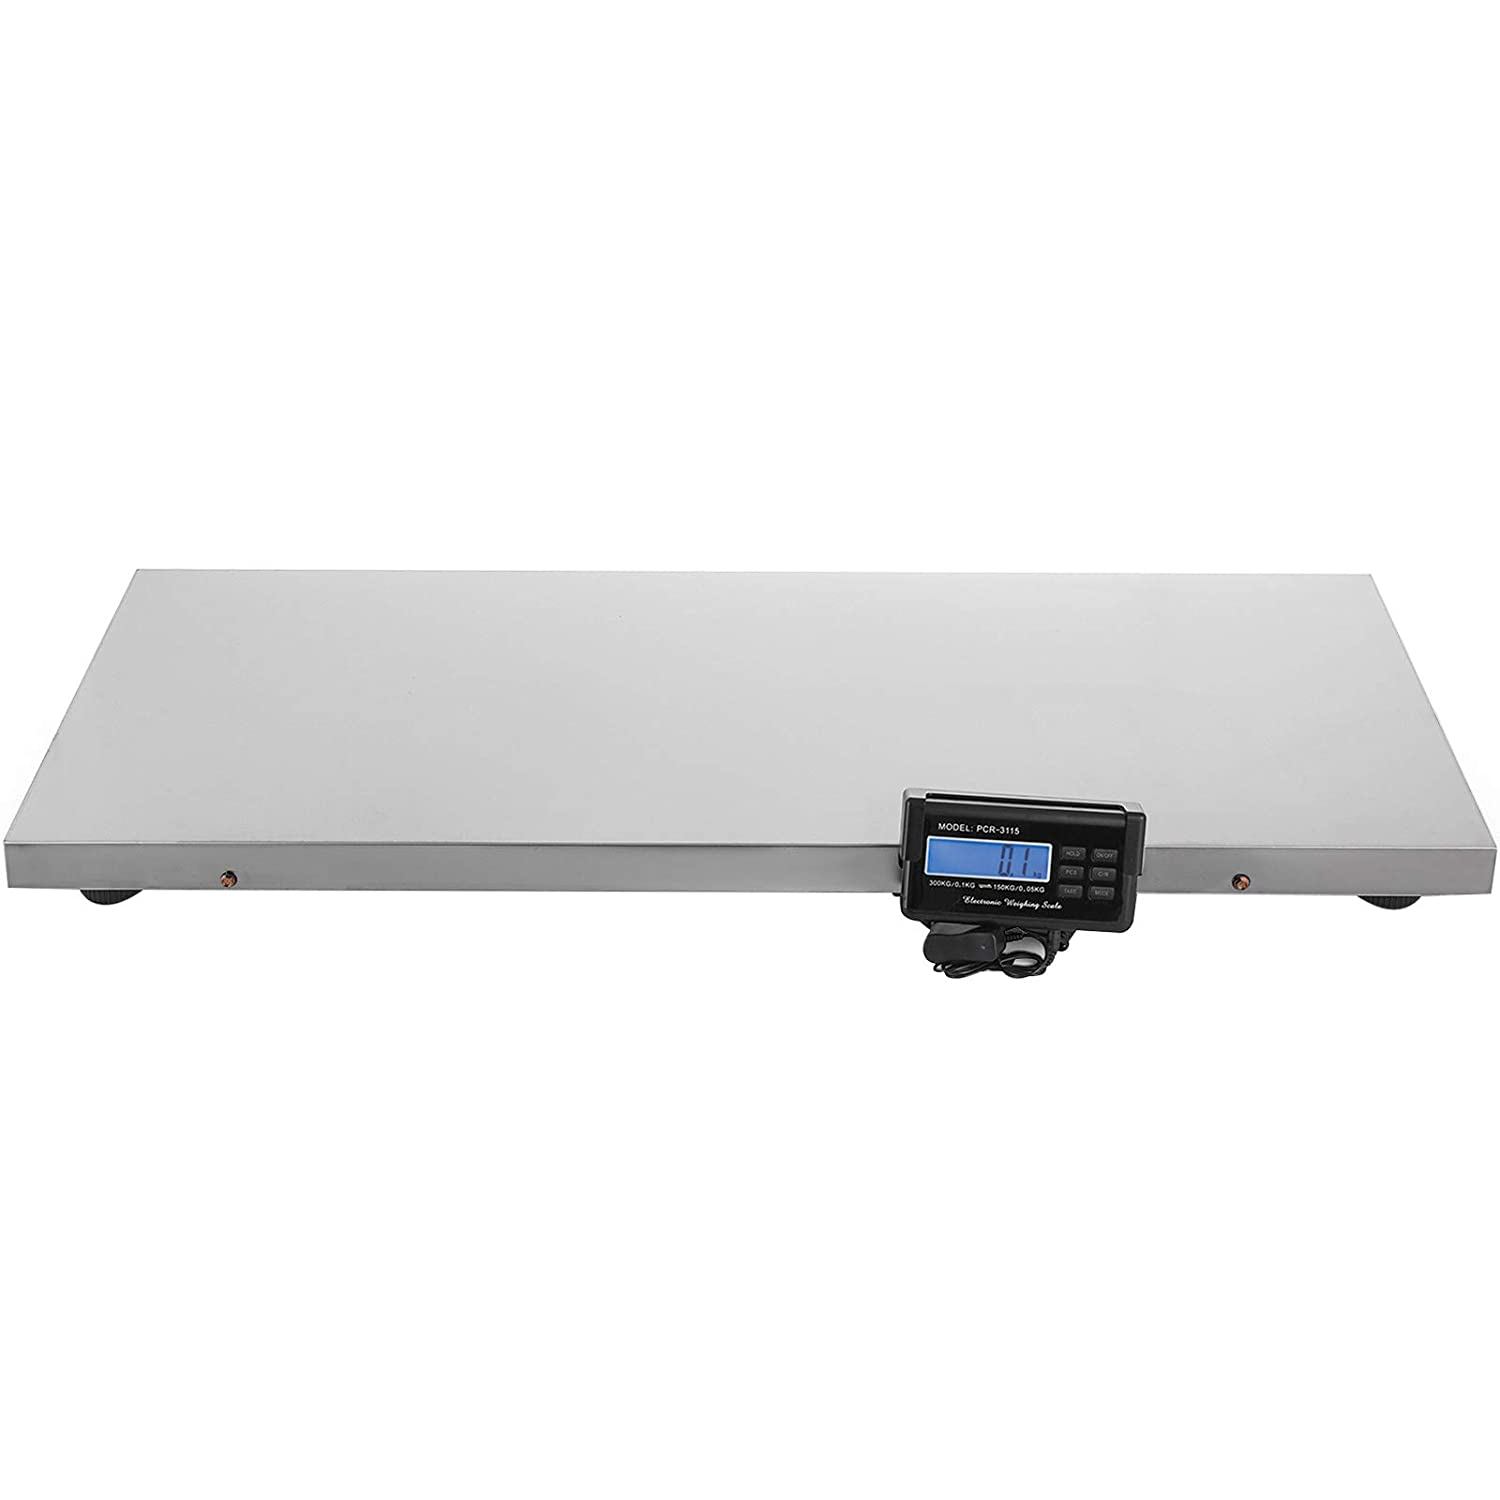 Today's only Happybuy 440Lbs Digital Livestock Scale 43x Minneapolis Mall Pet Vet Large